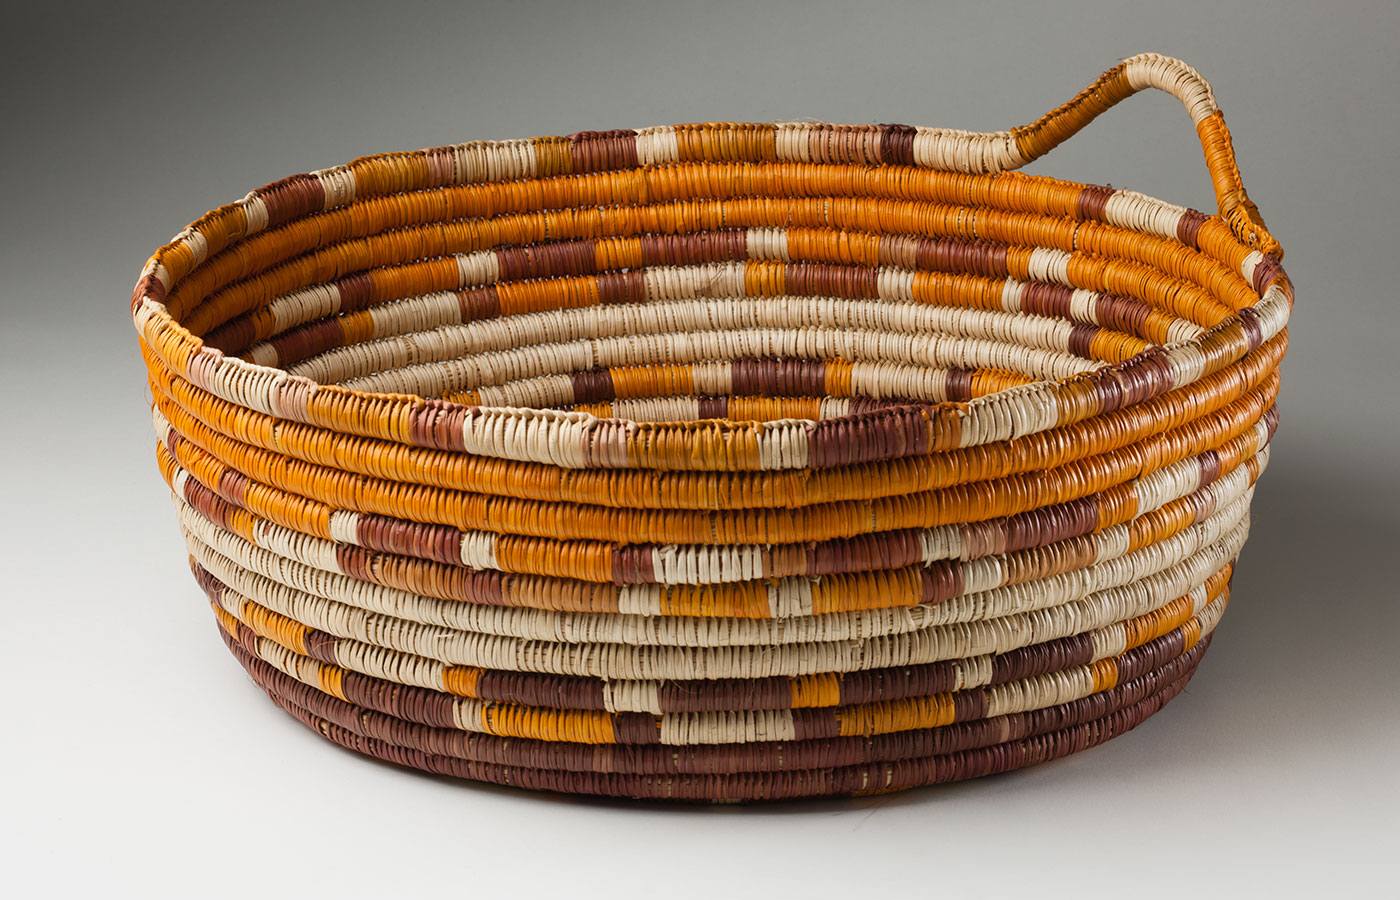 An orange, brown and straw-coloured coil basket made from pandanus fibre and vegetable dyes. It has an 'INJALAK' tag tied to a small handle at the side.